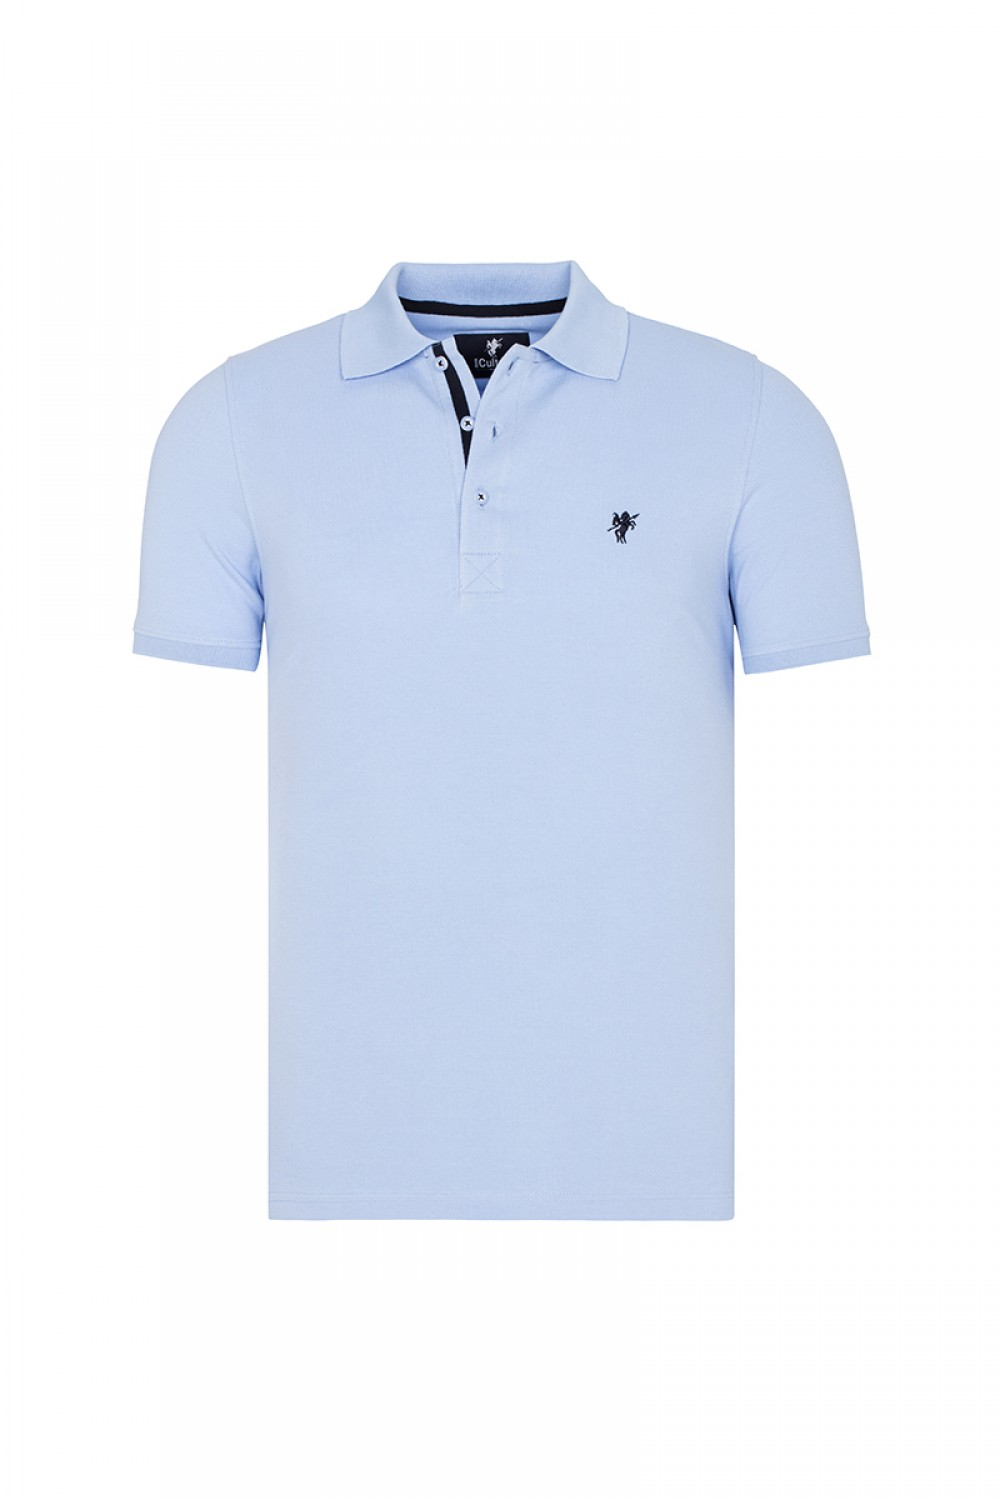 Men's Poloshirt Knitted Blue Cotton